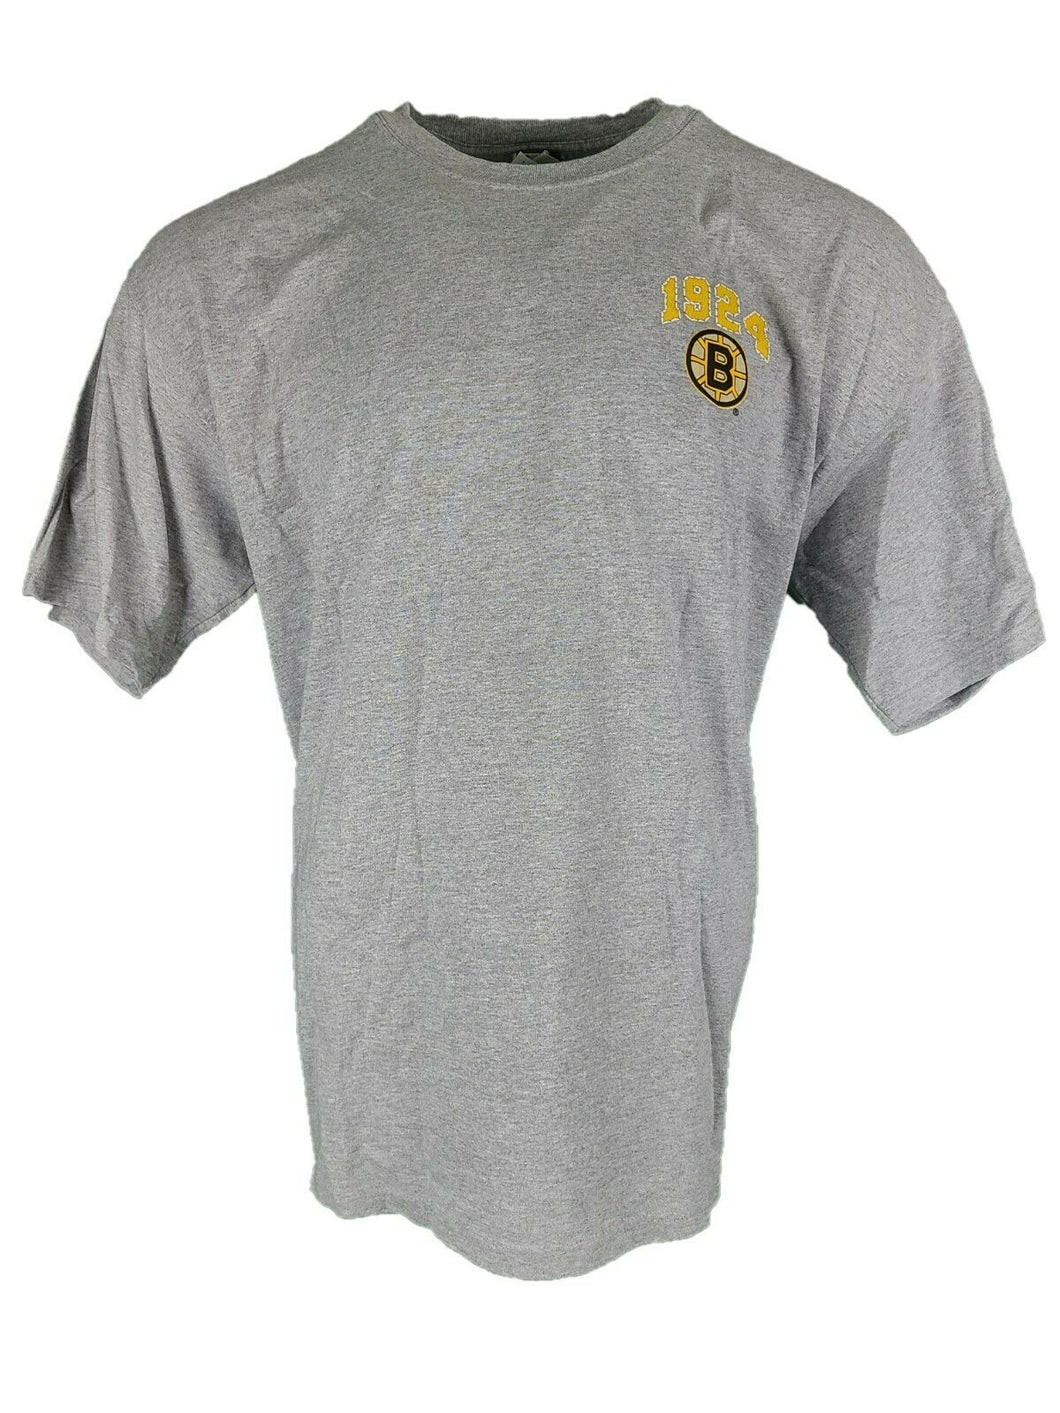 New Est. 1924 Boston Bruins T Shirt With Graphics On Front And Back Gray